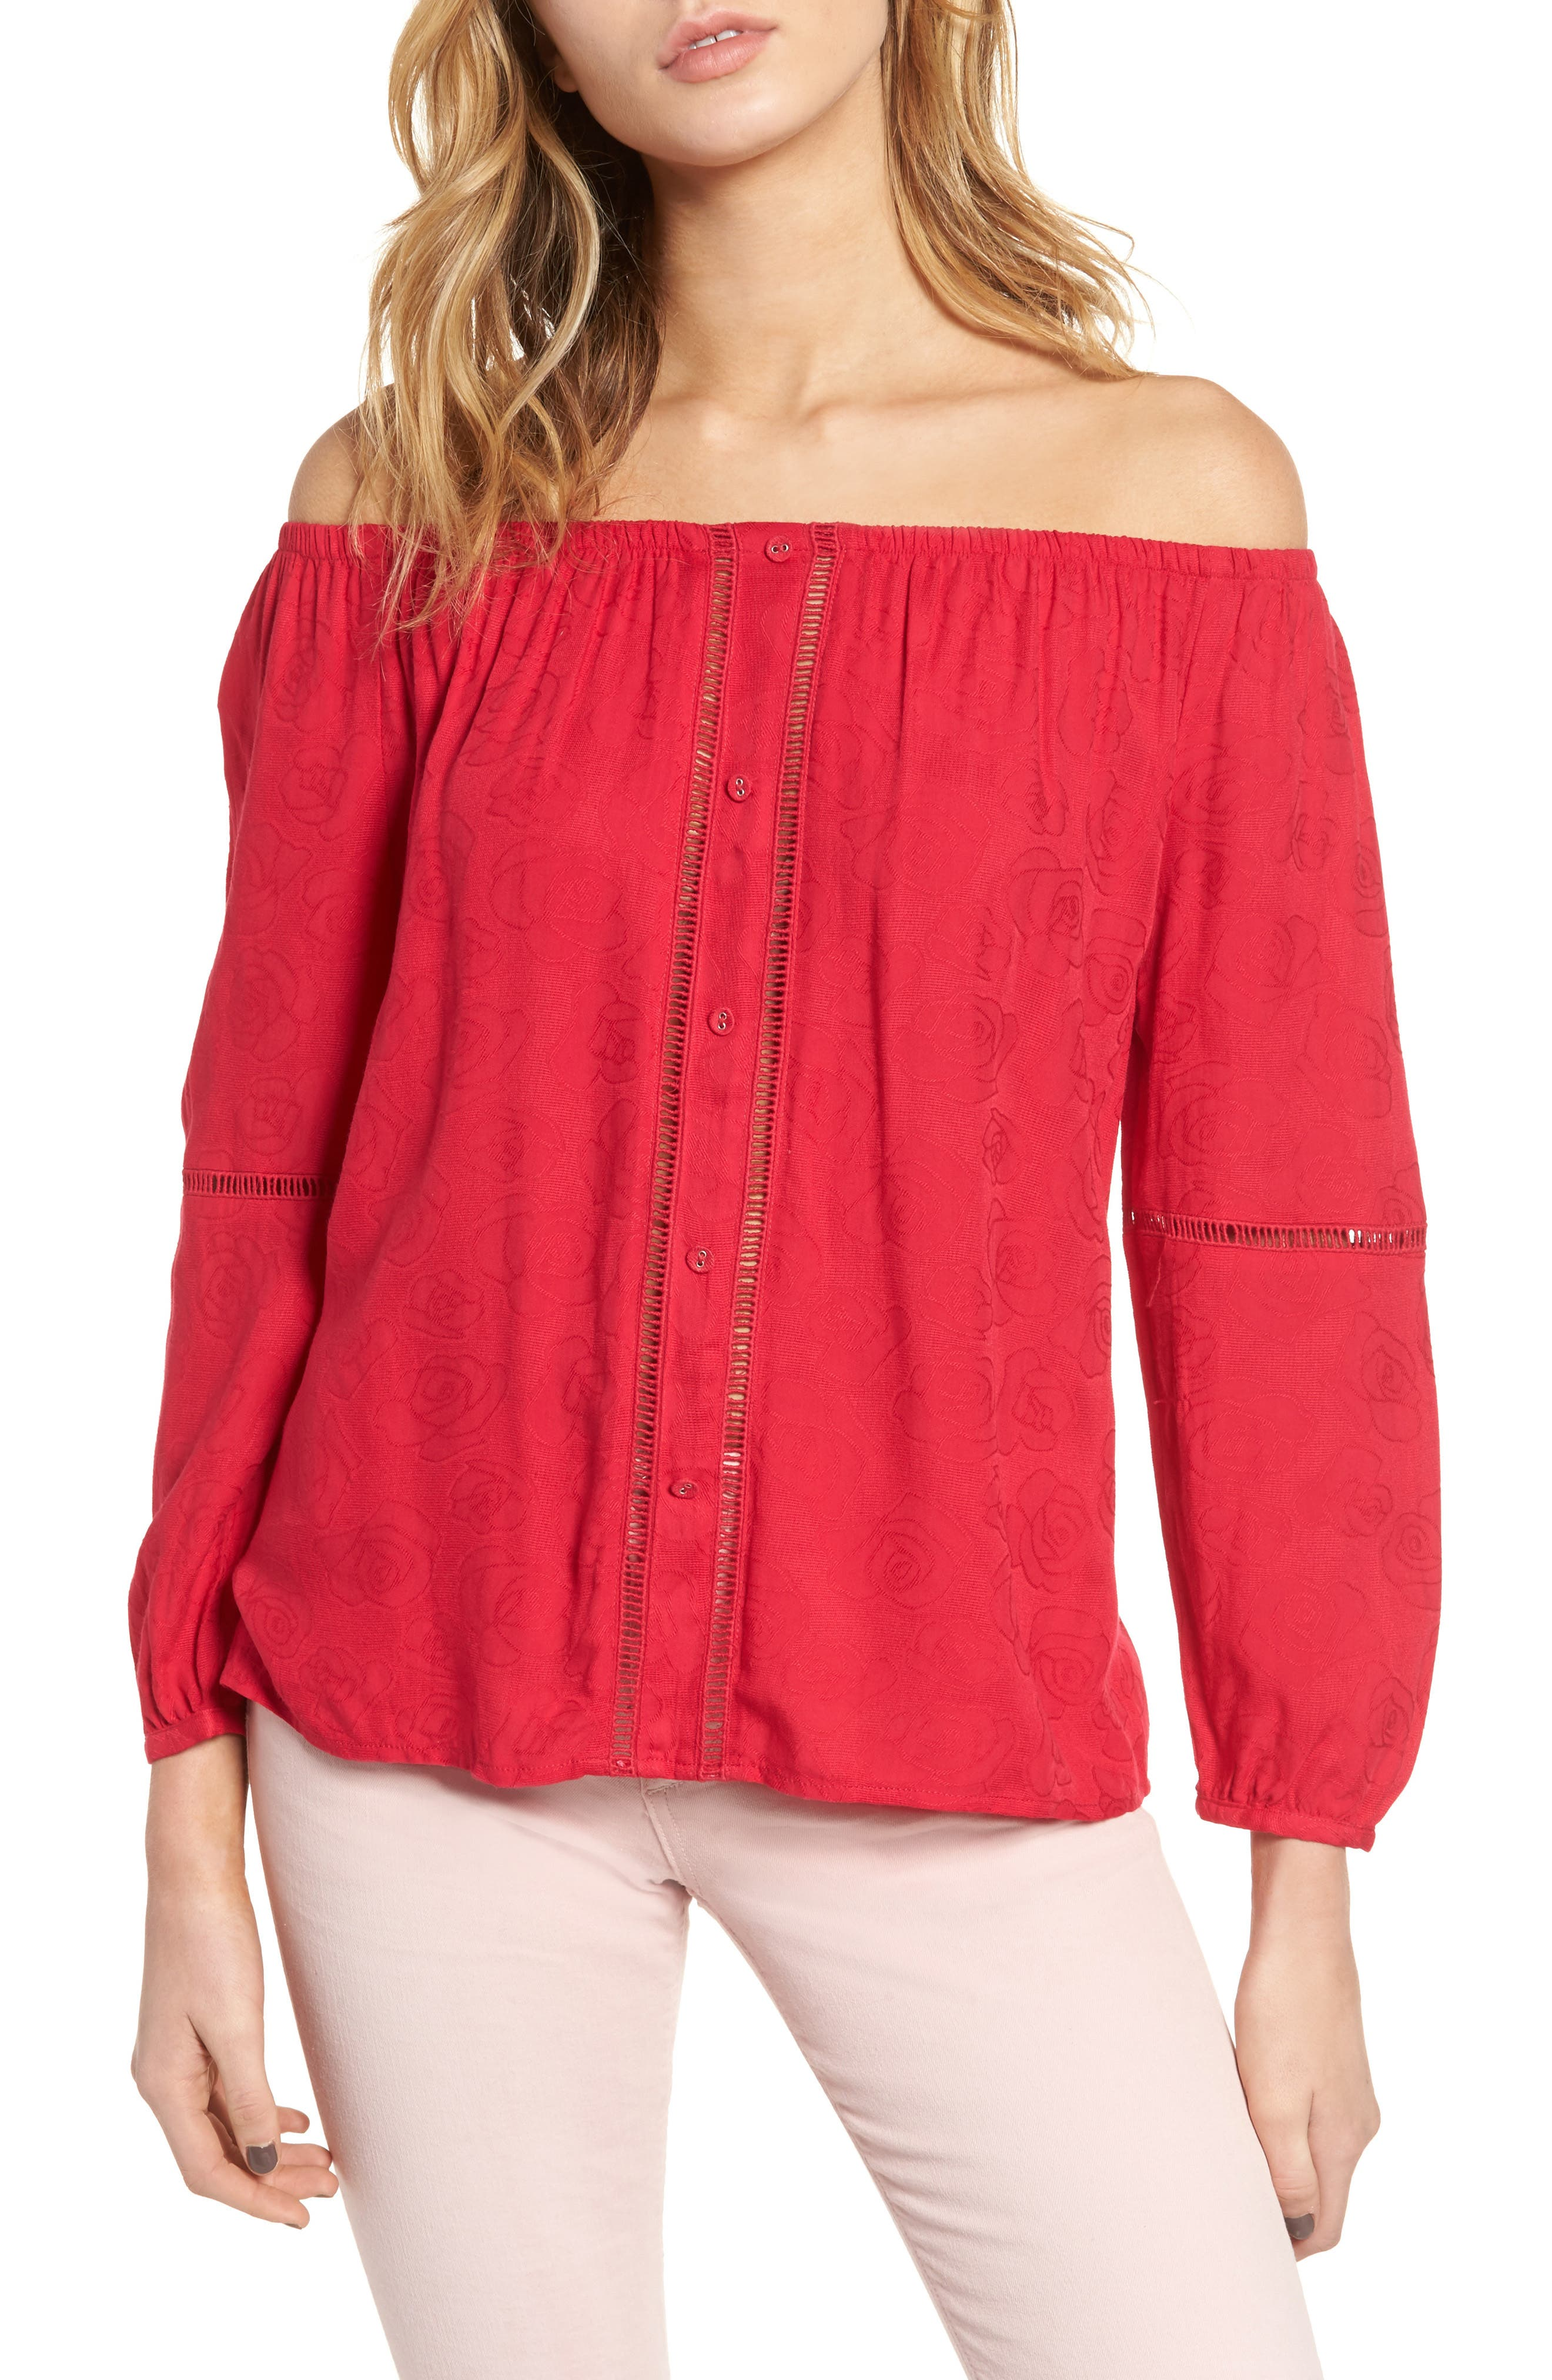 cupcakes and cashmere Havyn Off-the-Shoulder Top